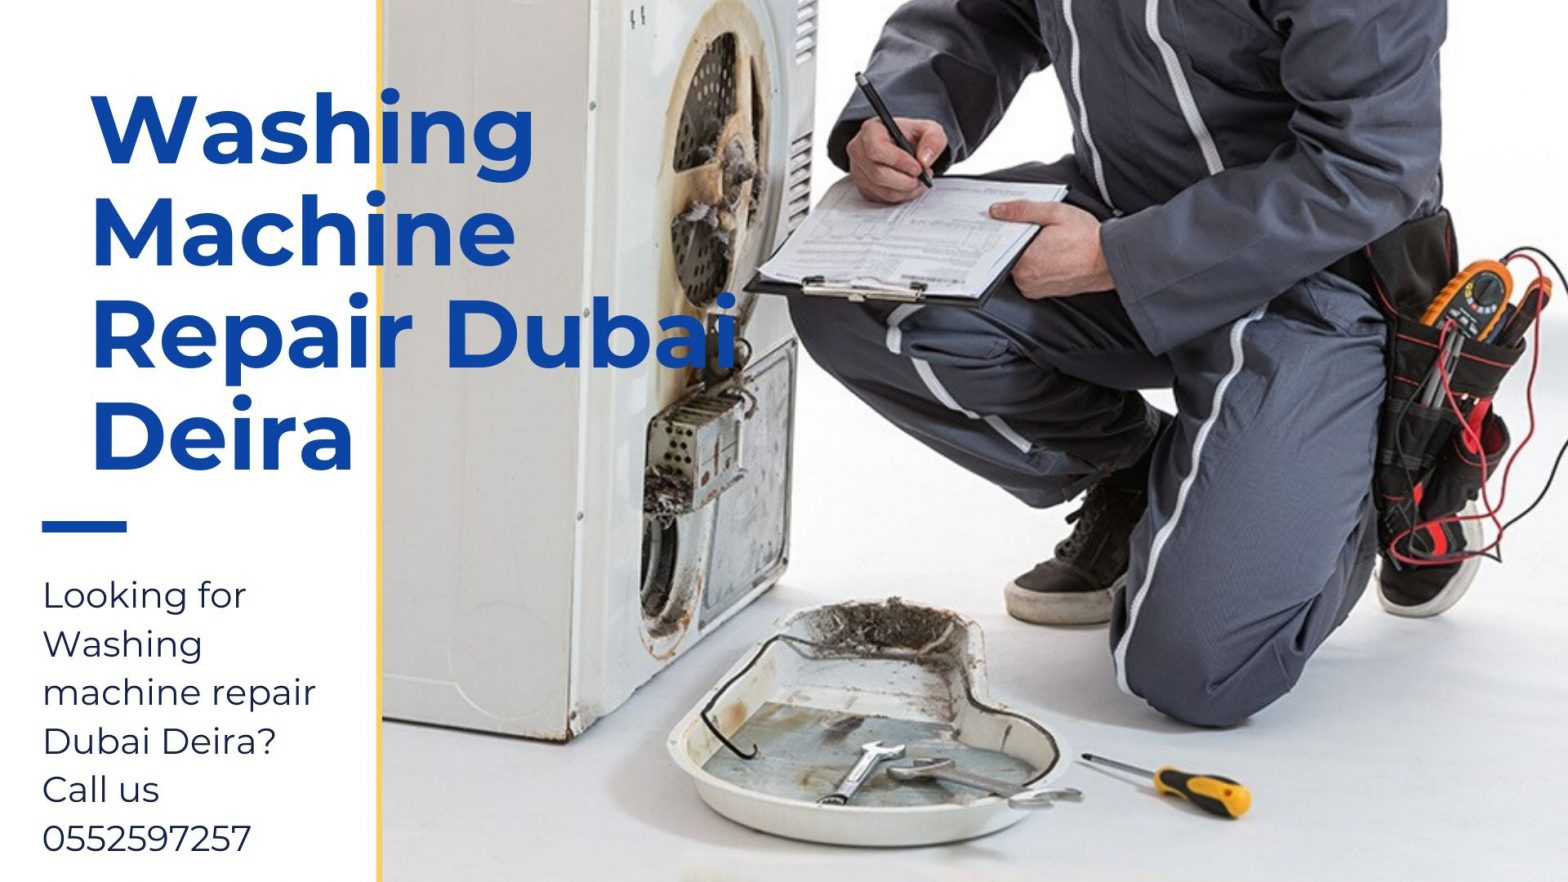 Washing machine repair Dubai Deira